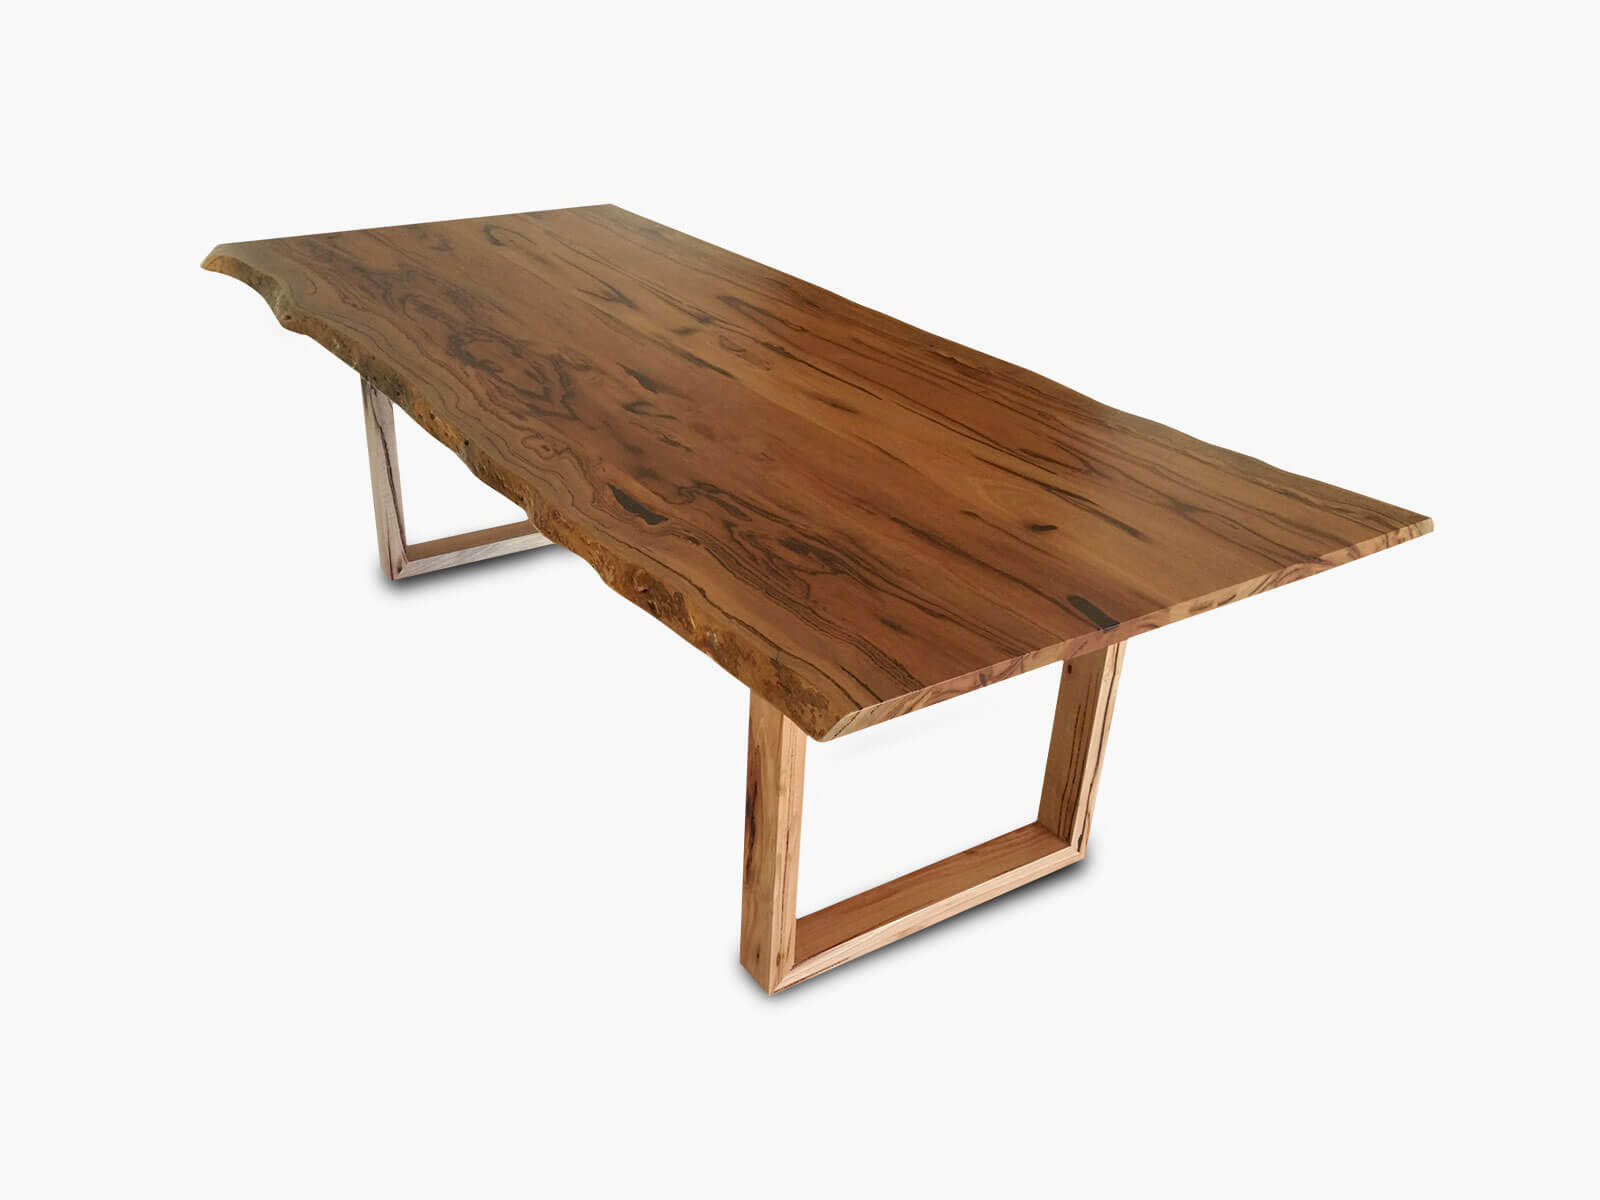 Stoneville-Edge Timber Furniture